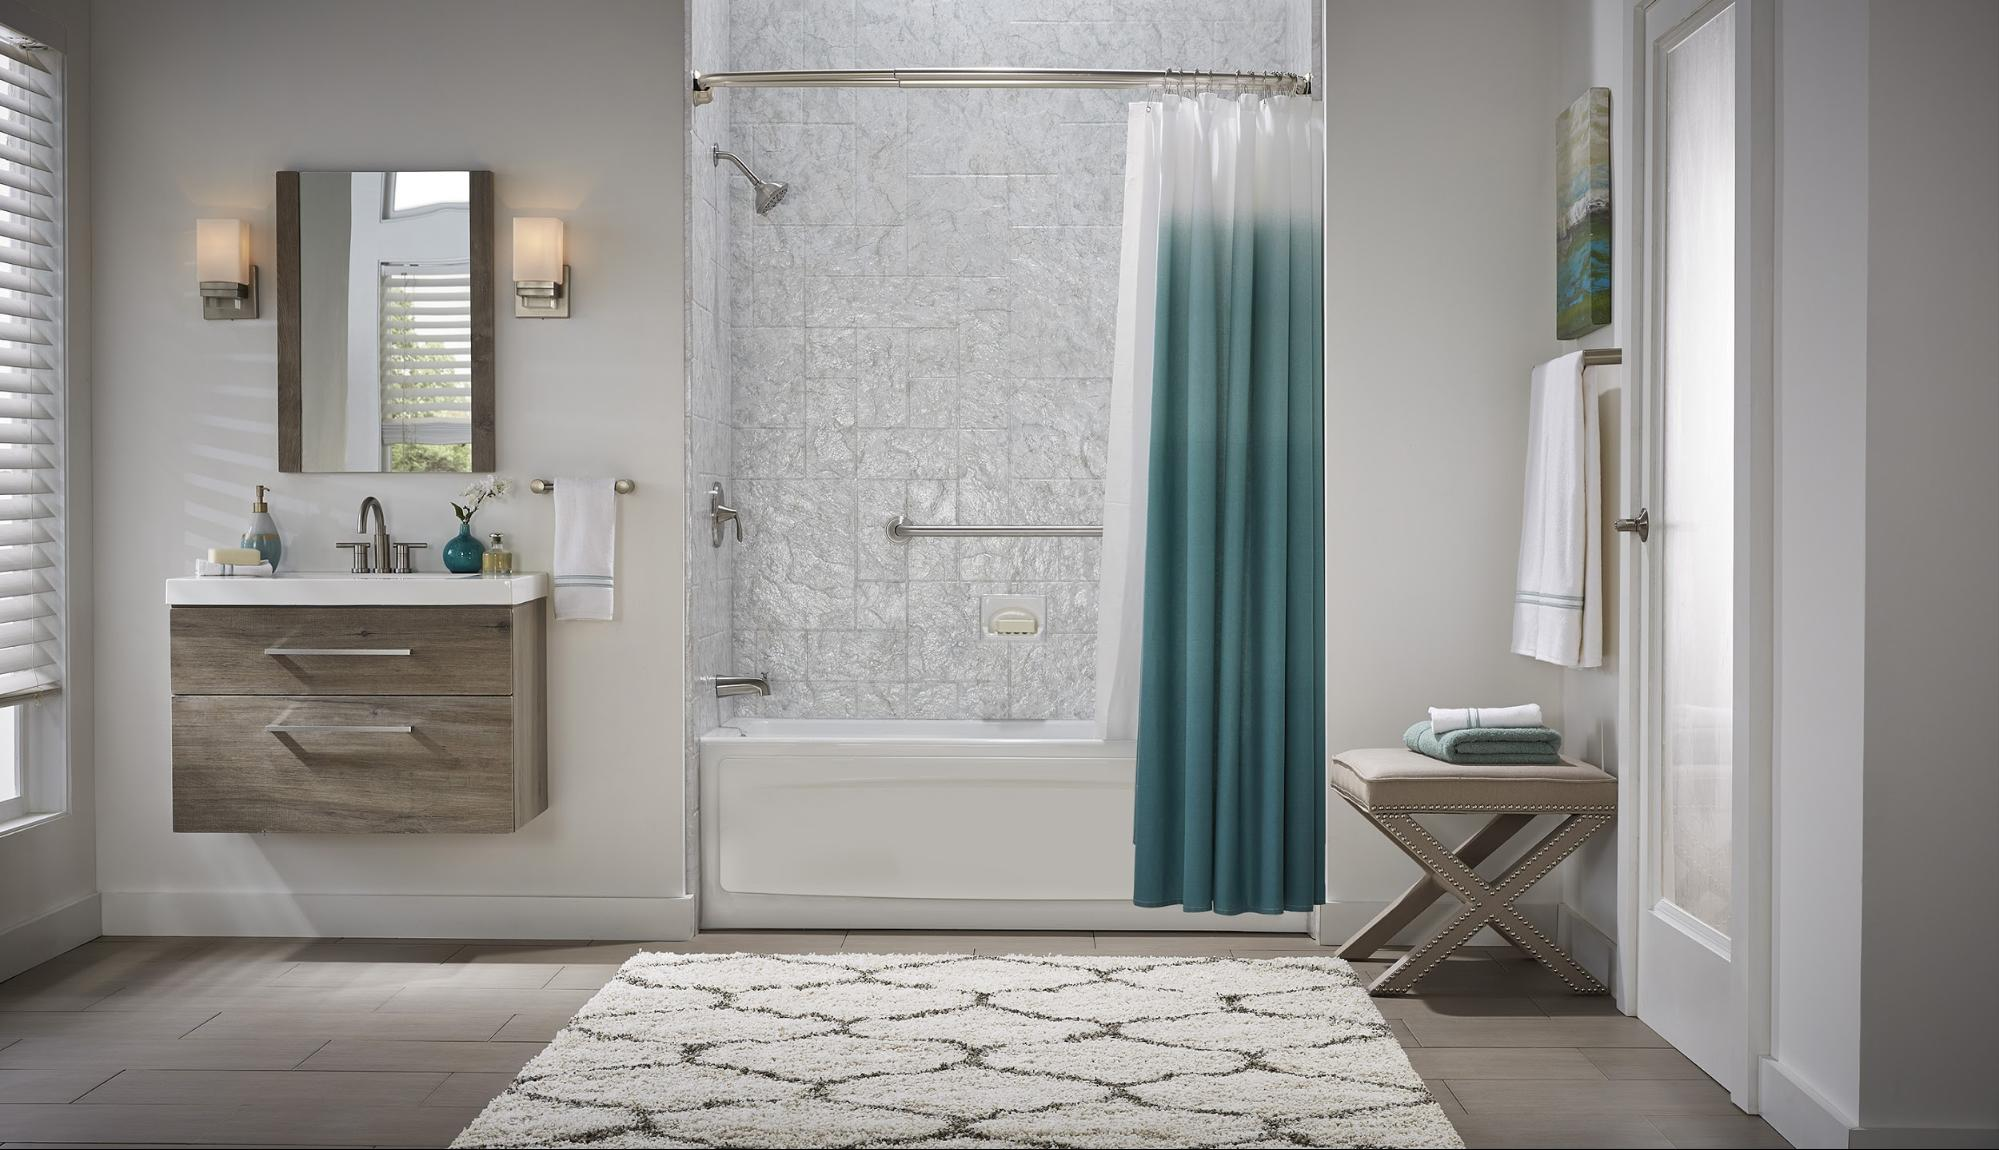 Signs of Mold or Mildew in Your Shower